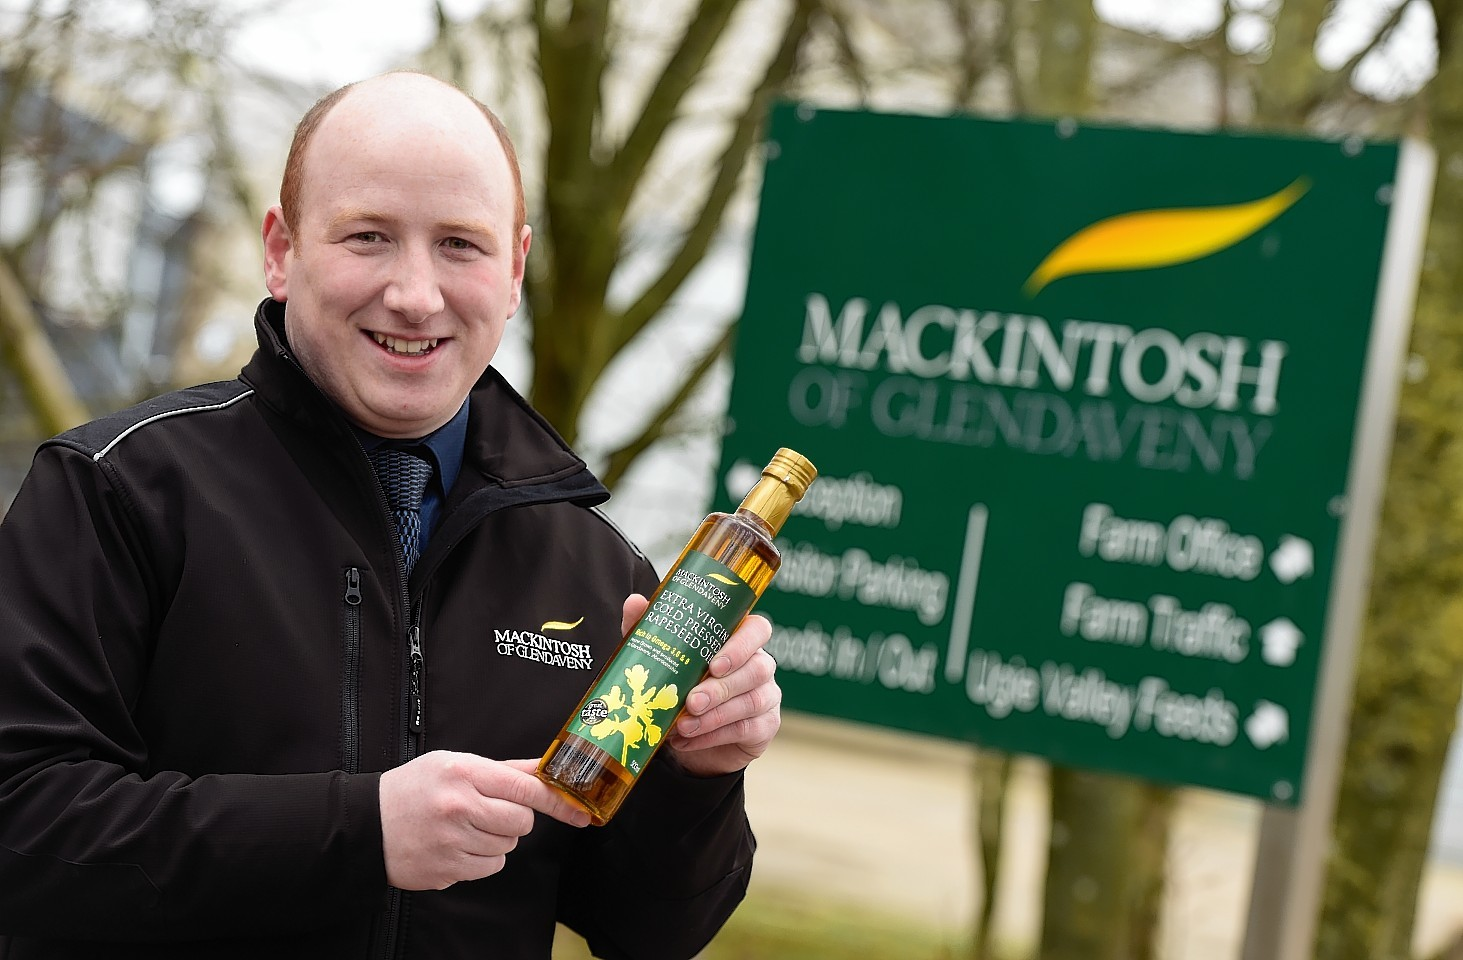 Gregor Mackintosh started the business when he was 21